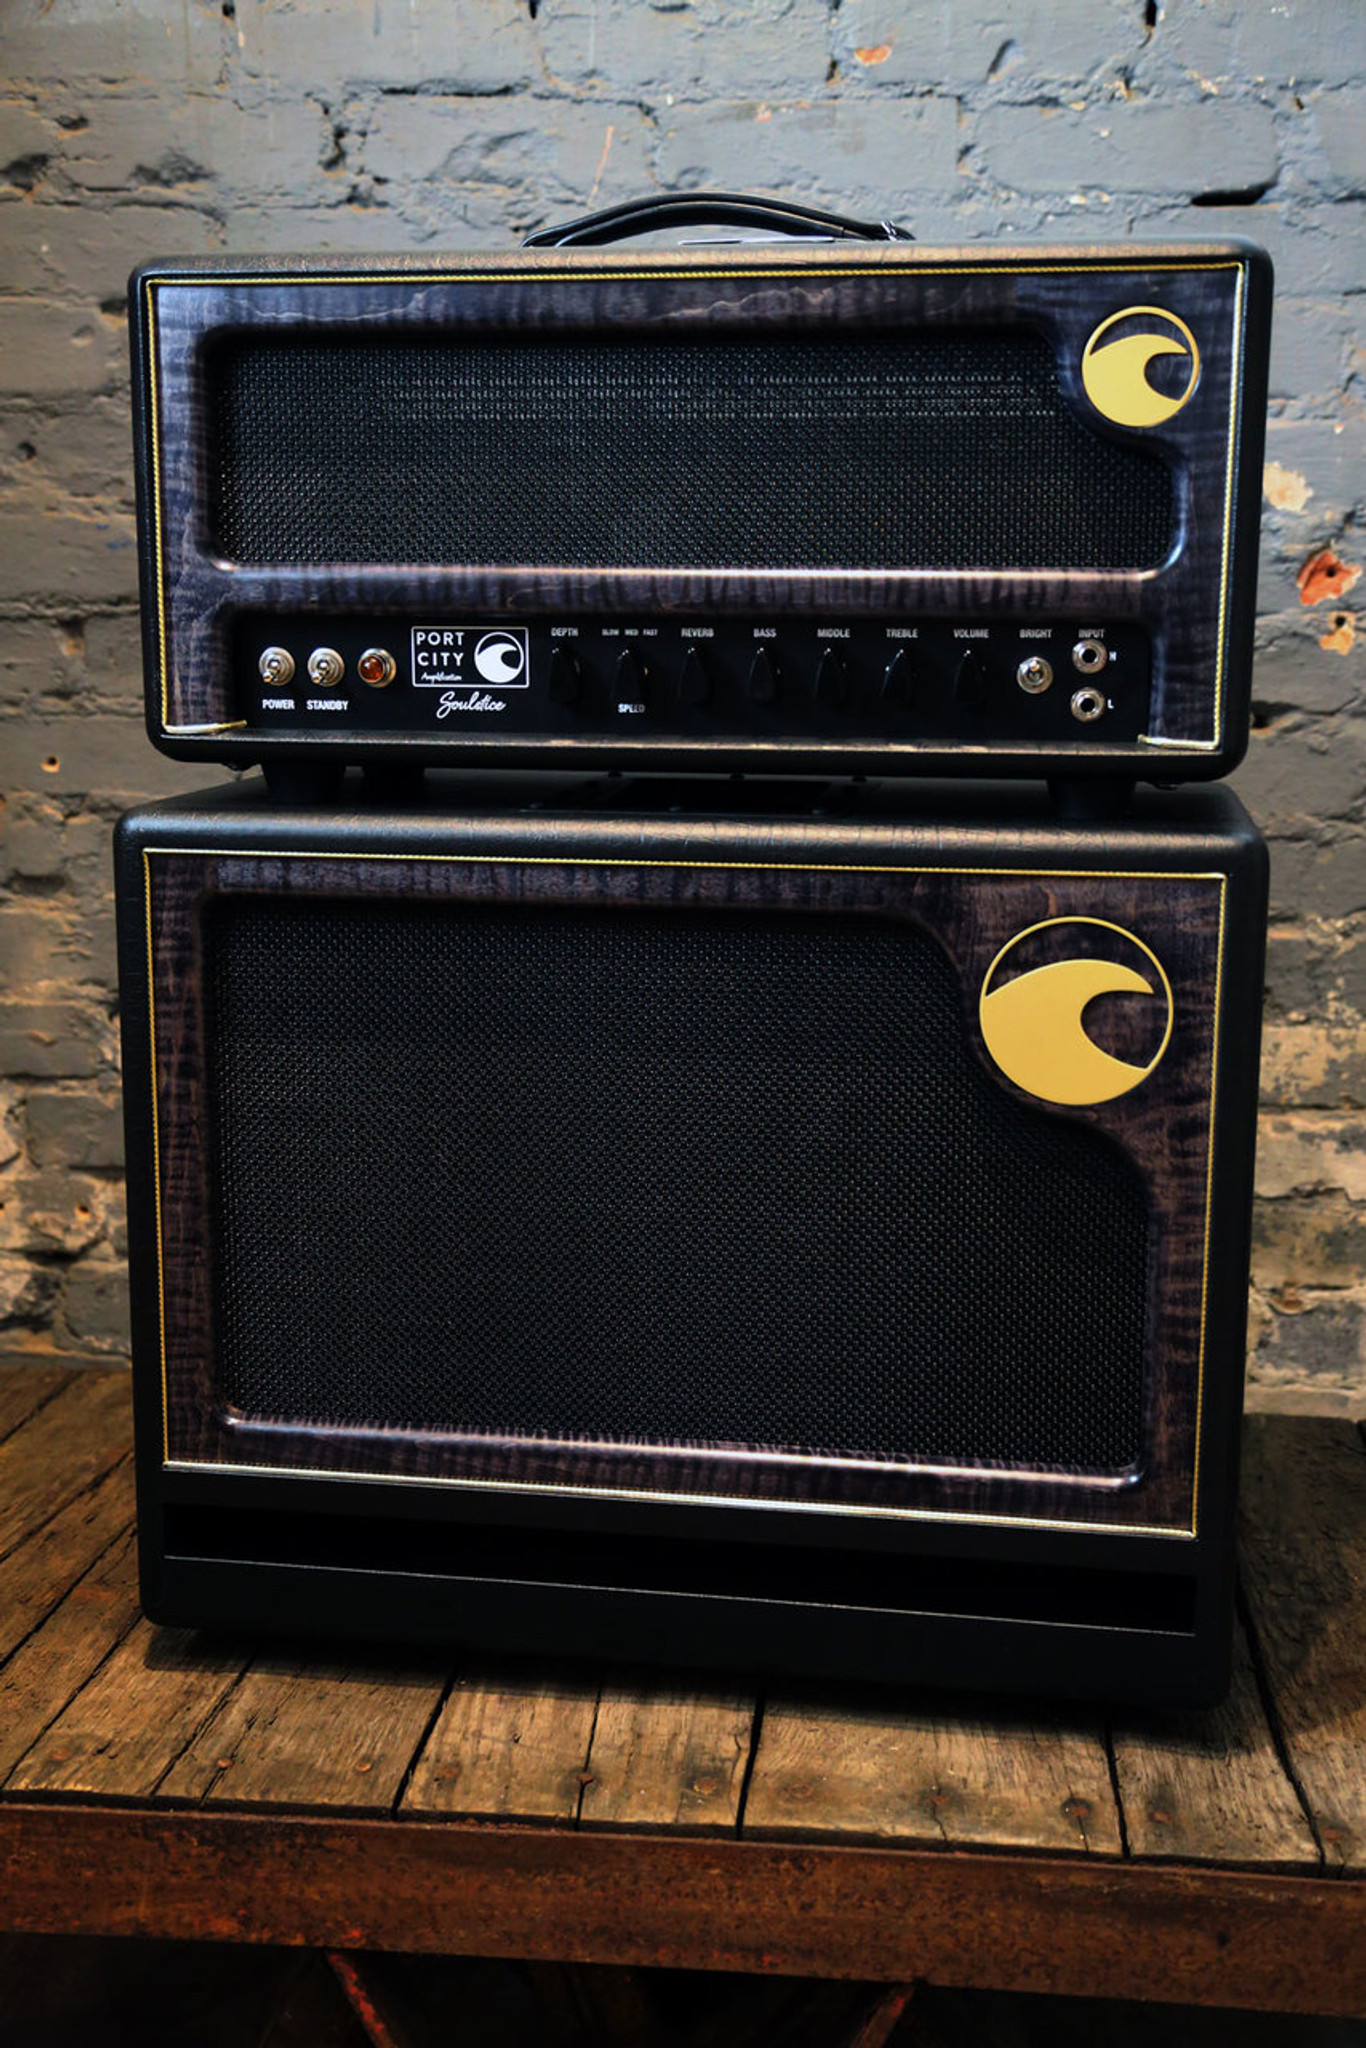 Port City Soulstice Guitar Amp